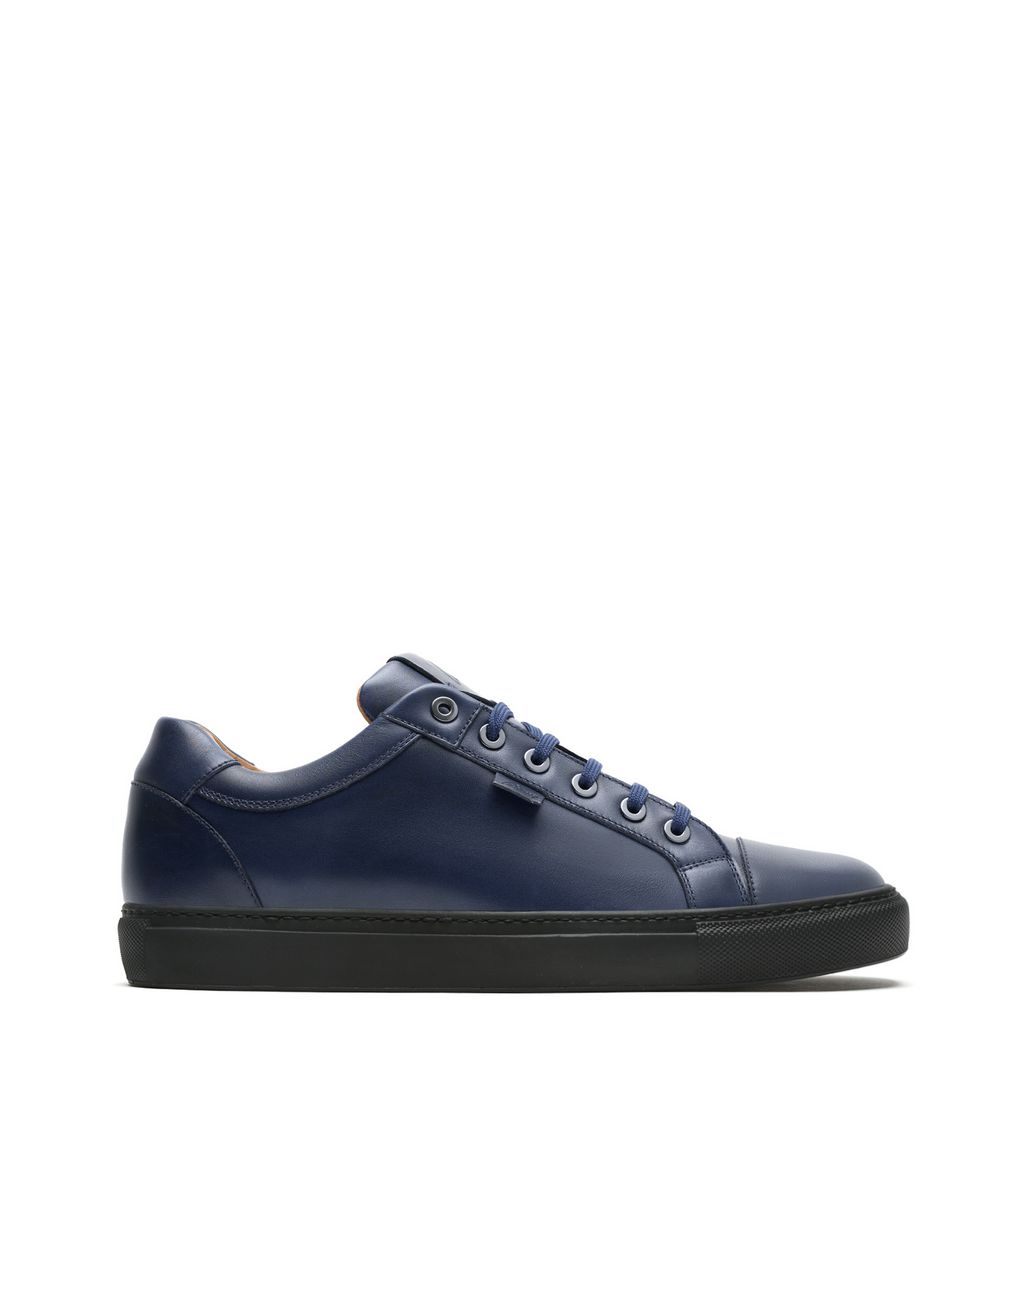 BRIONI Navy-Blue Calfskin Sneaker Sneakers [*** pickupInStoreShippingNotGuaranteed_info ***] f